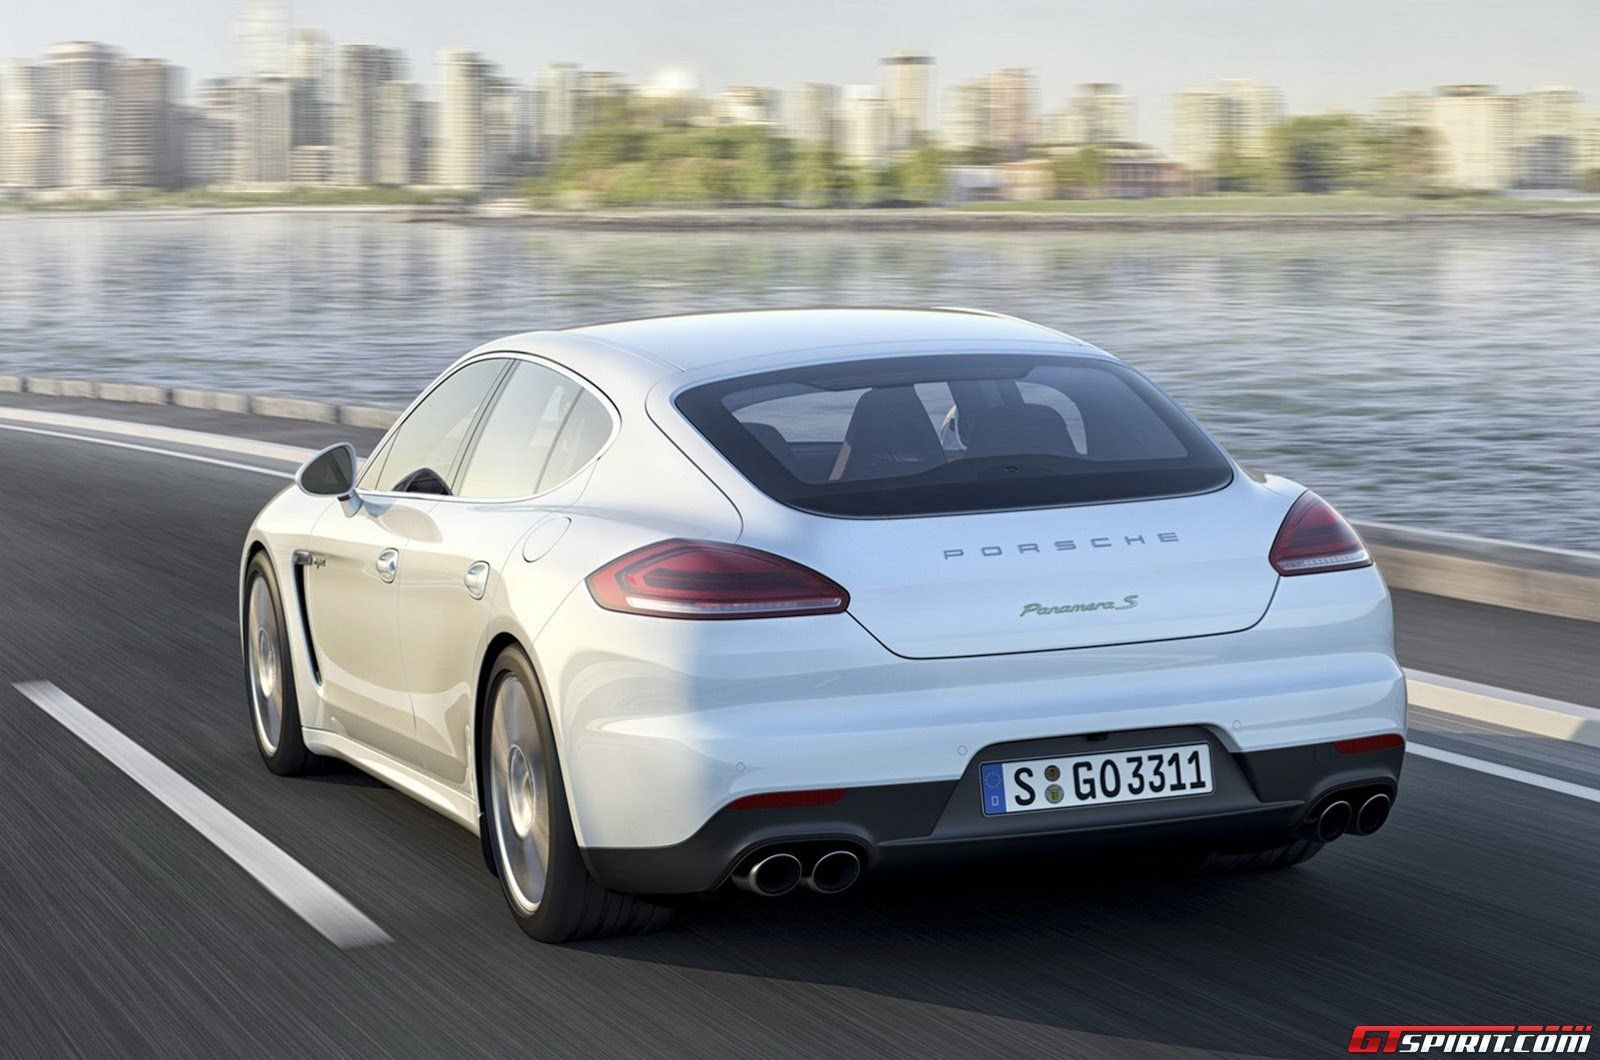 2016 Porsche Panamera To Share Future Bentley Continental Platform Lamborghini